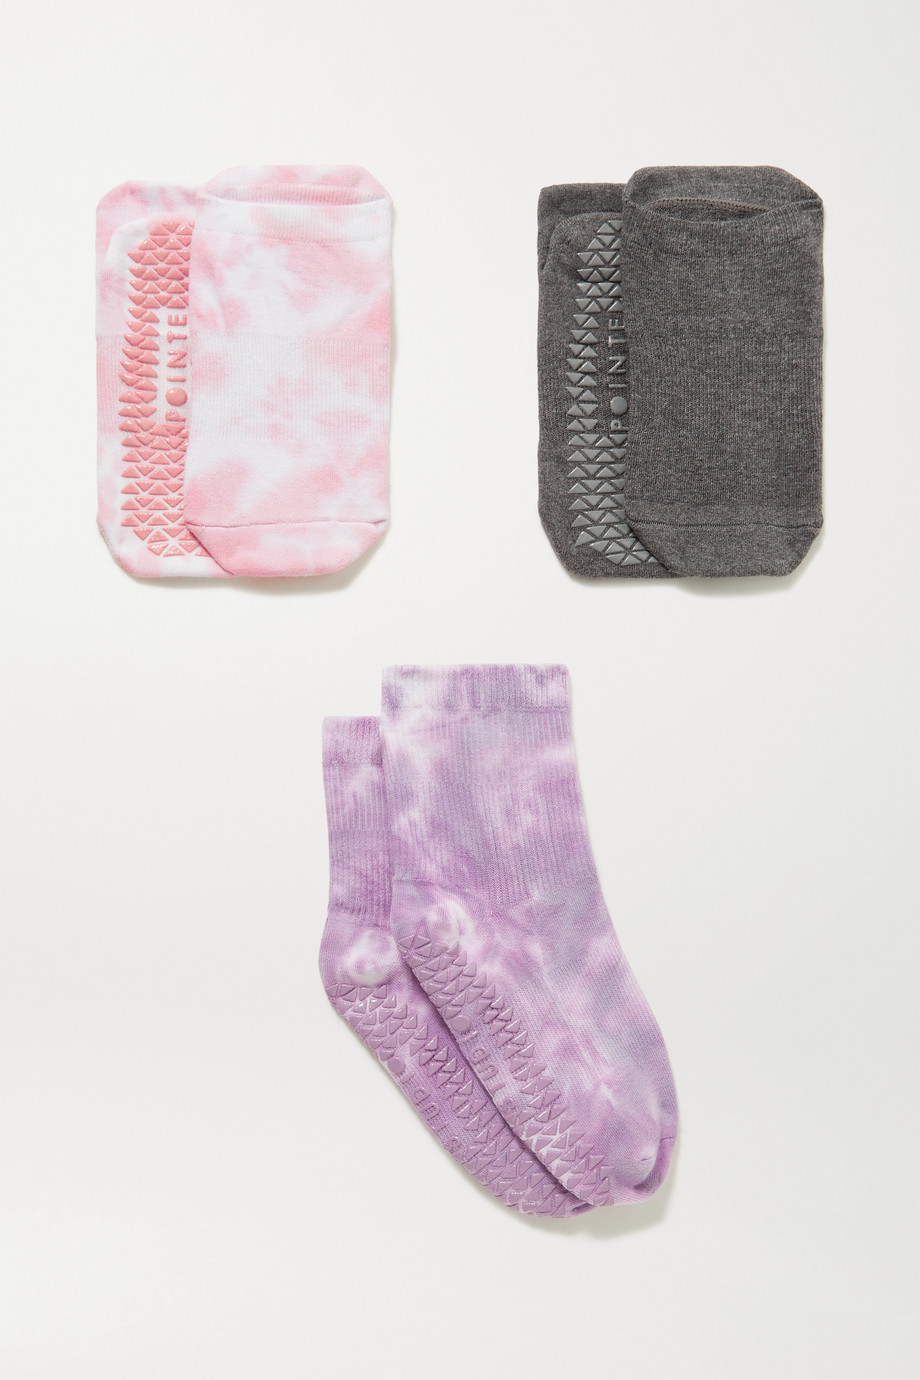 POINTE STUDIO Fashion Studio set of three cotton-blend socks